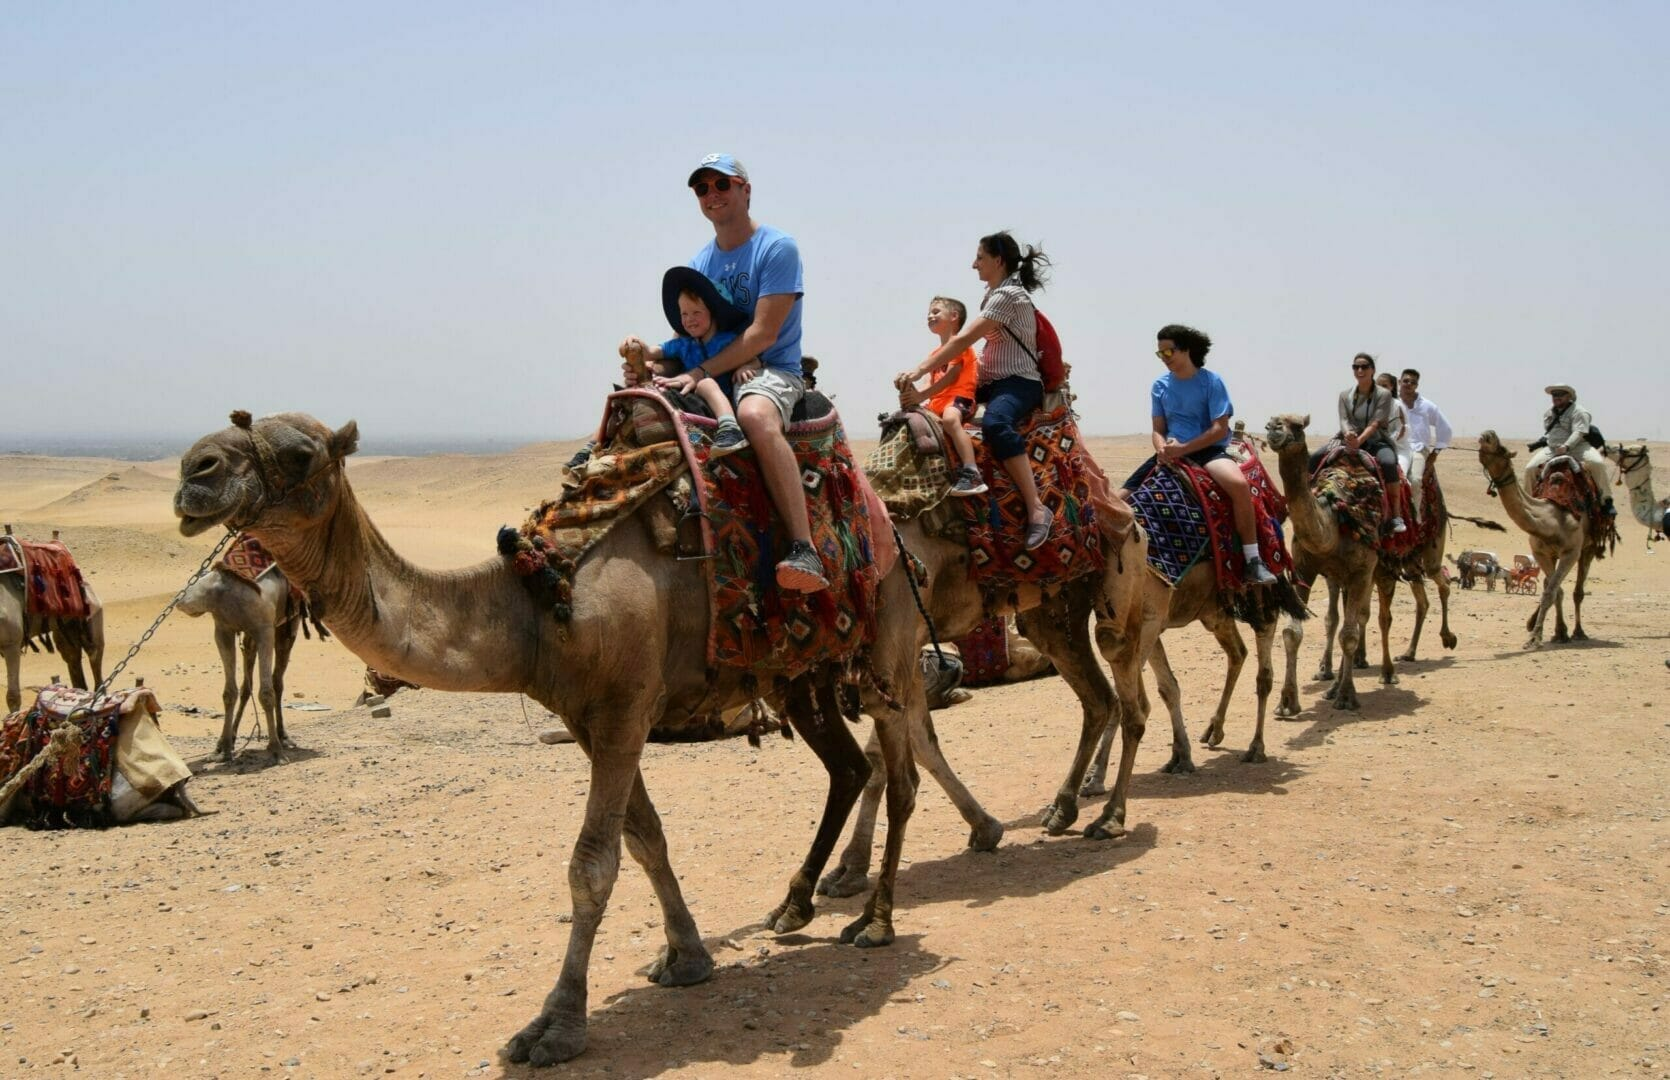 Egypt Budget Group Tour Package on camels at the Pyramids